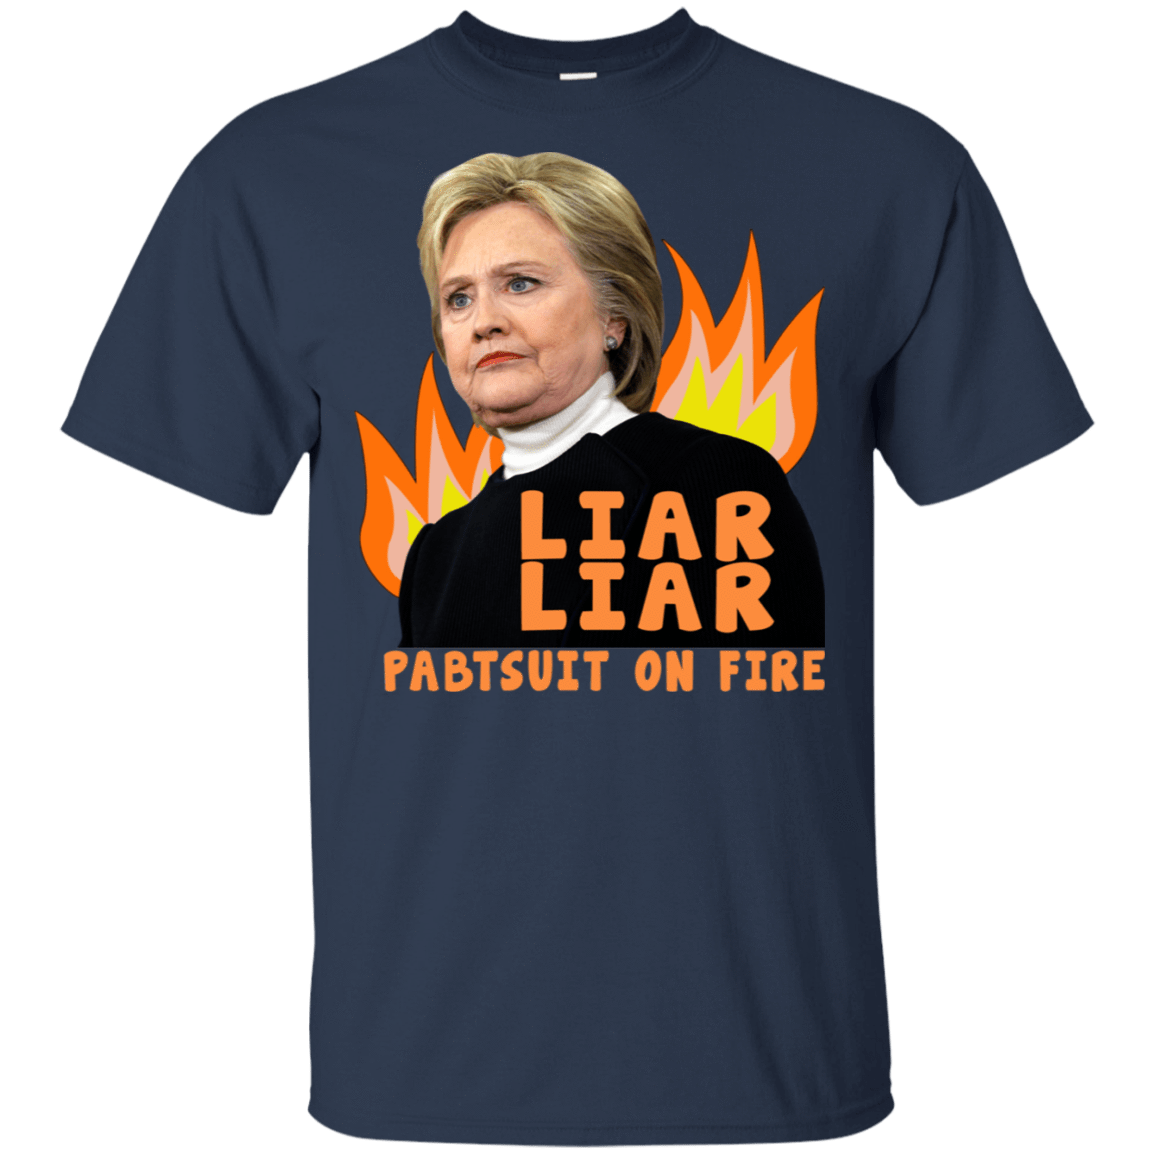 Hillary Clinton: Liar Liar Pantsuit On Fire 22-111-74096011-250 - Tee Ript